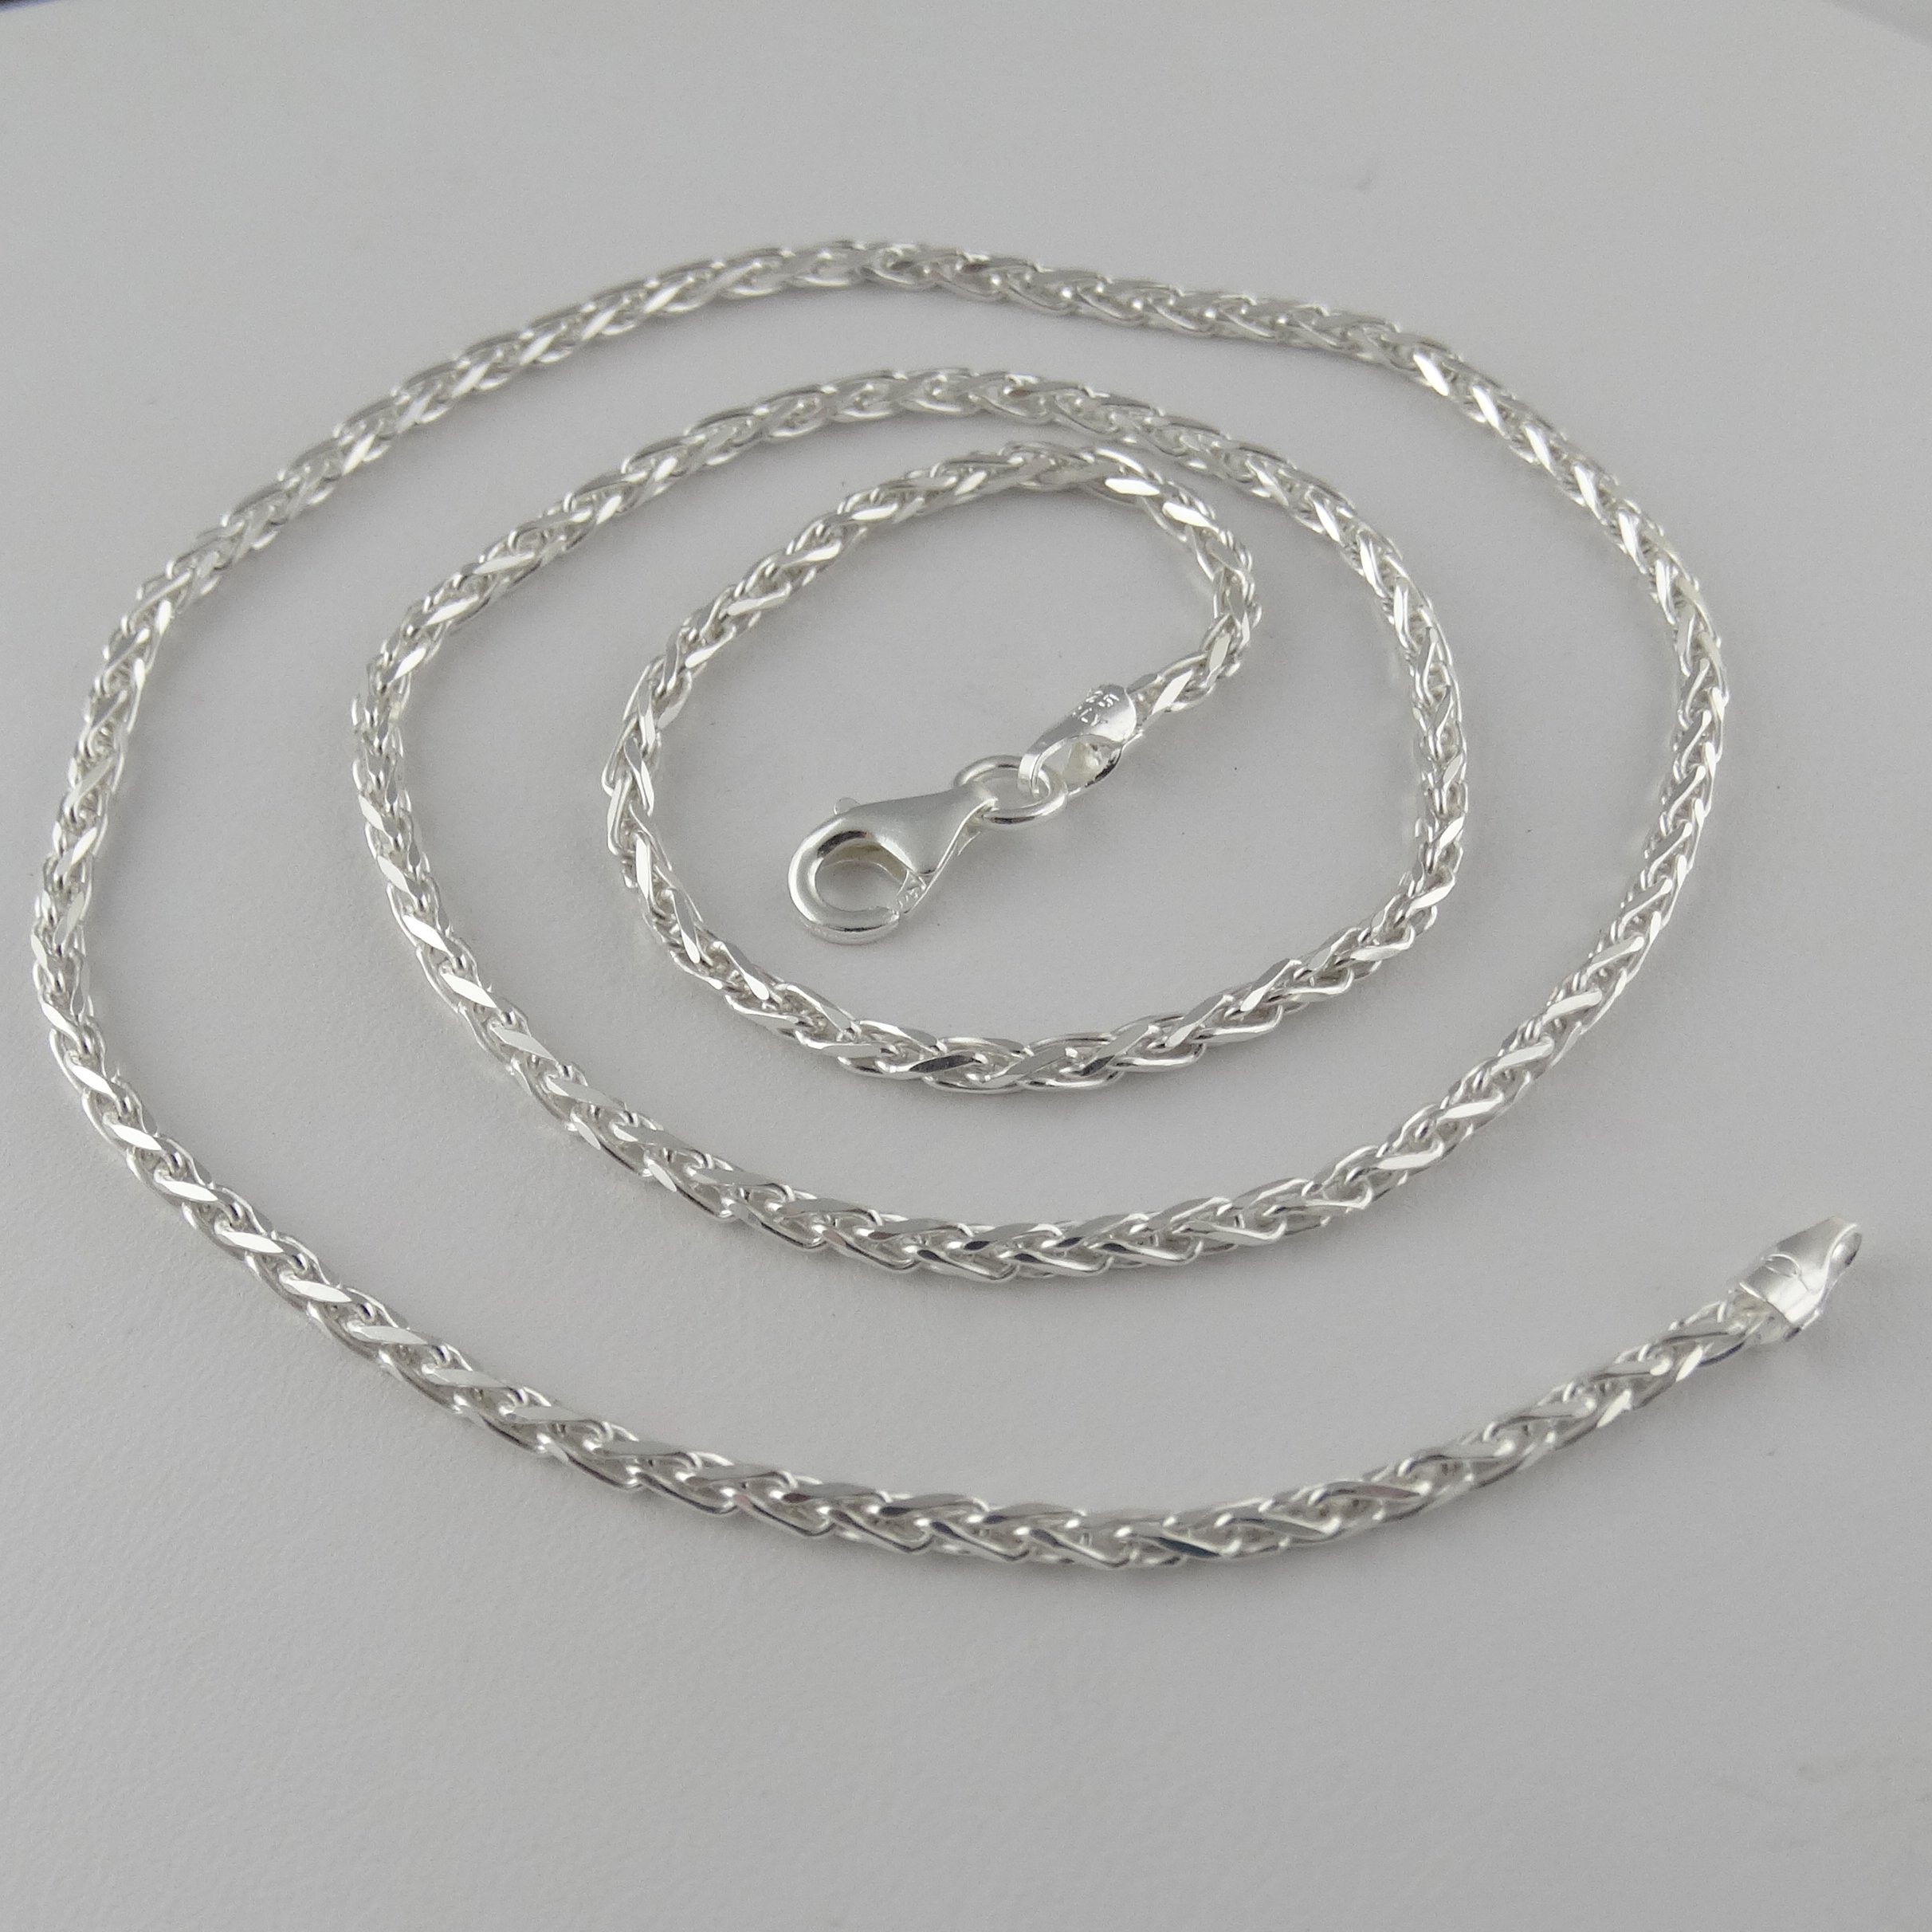 Italian 925 Sterling Silver 3mm Spiga Wheat Diamond Cut Chain Necklace - 16, 18, 24, 30 Inches (18) by FashionJunkie4Life (Image #3)